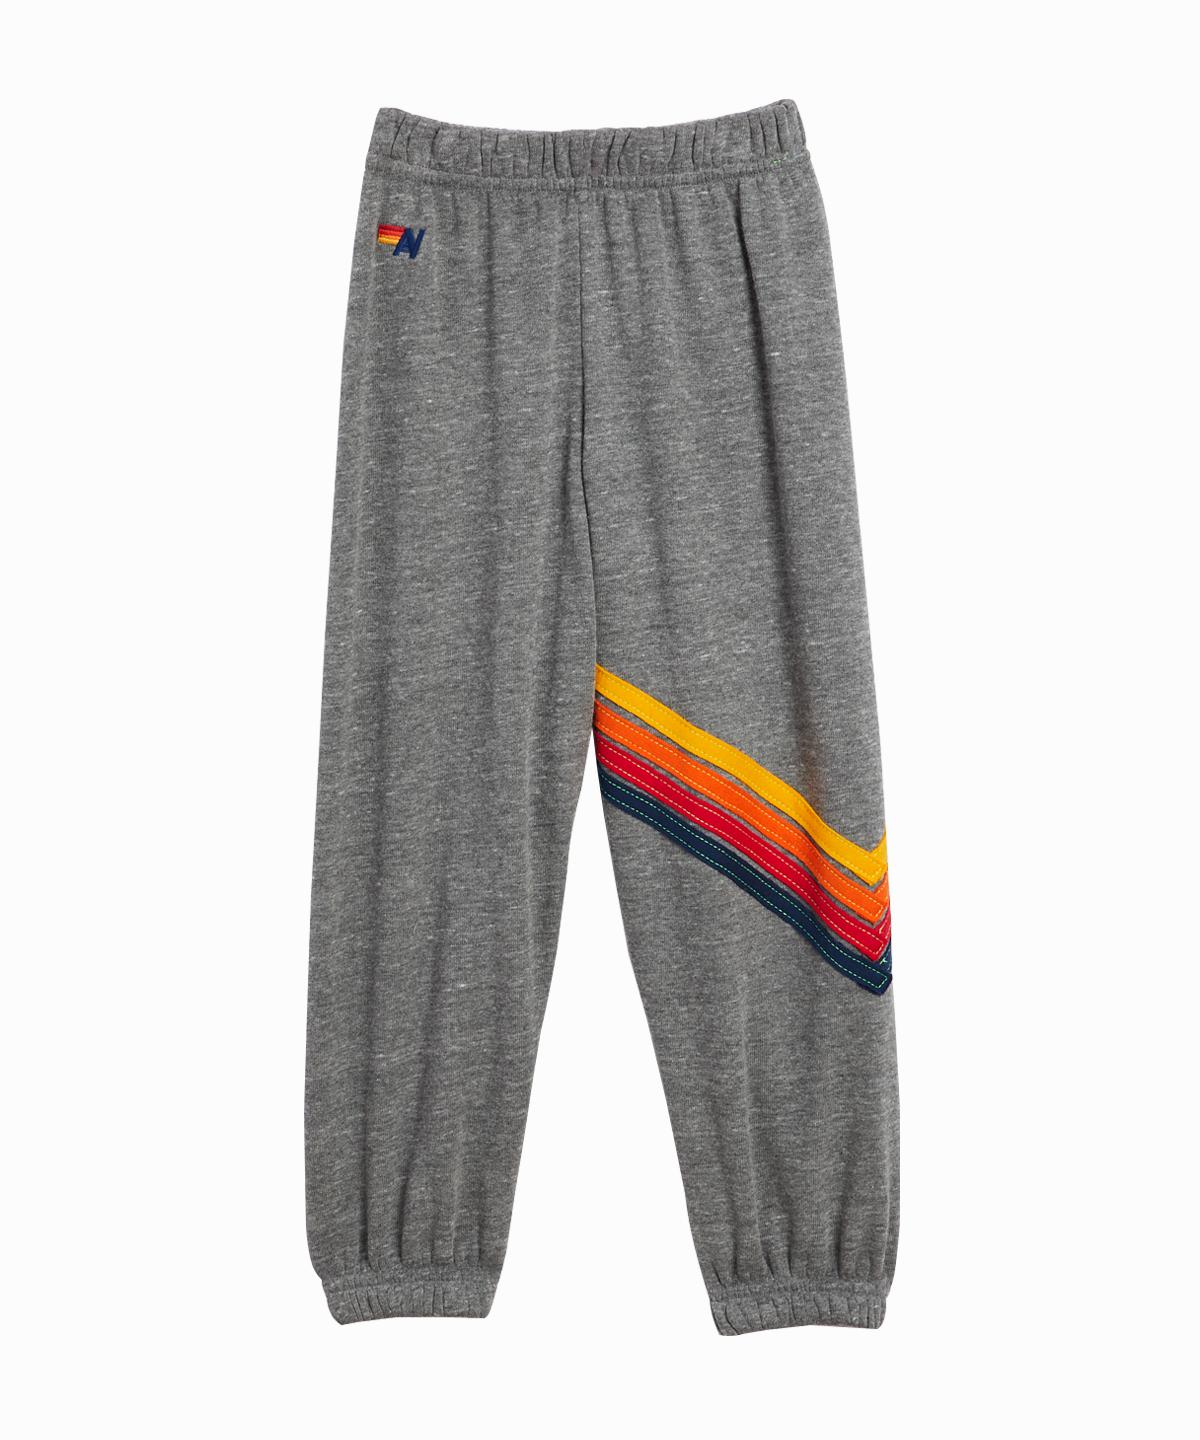 Chevron Striped Sweatpants